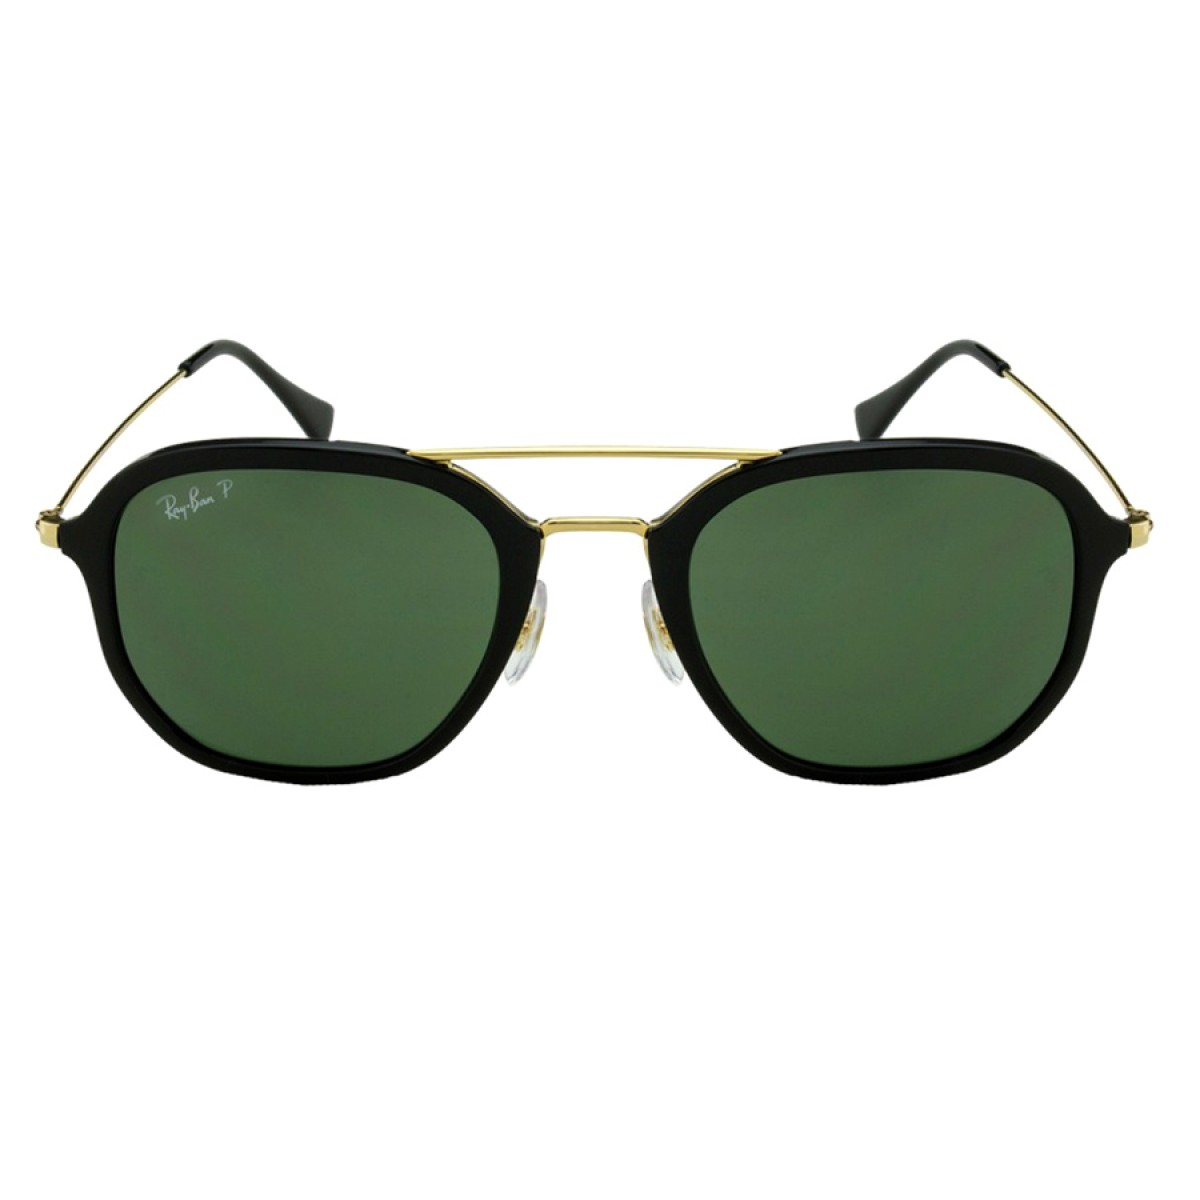 44b21f5e51 Ray Ban Highstreet Polarized Classic Green G-15 Square Unisex Sunglasses  RB4273-601 9A